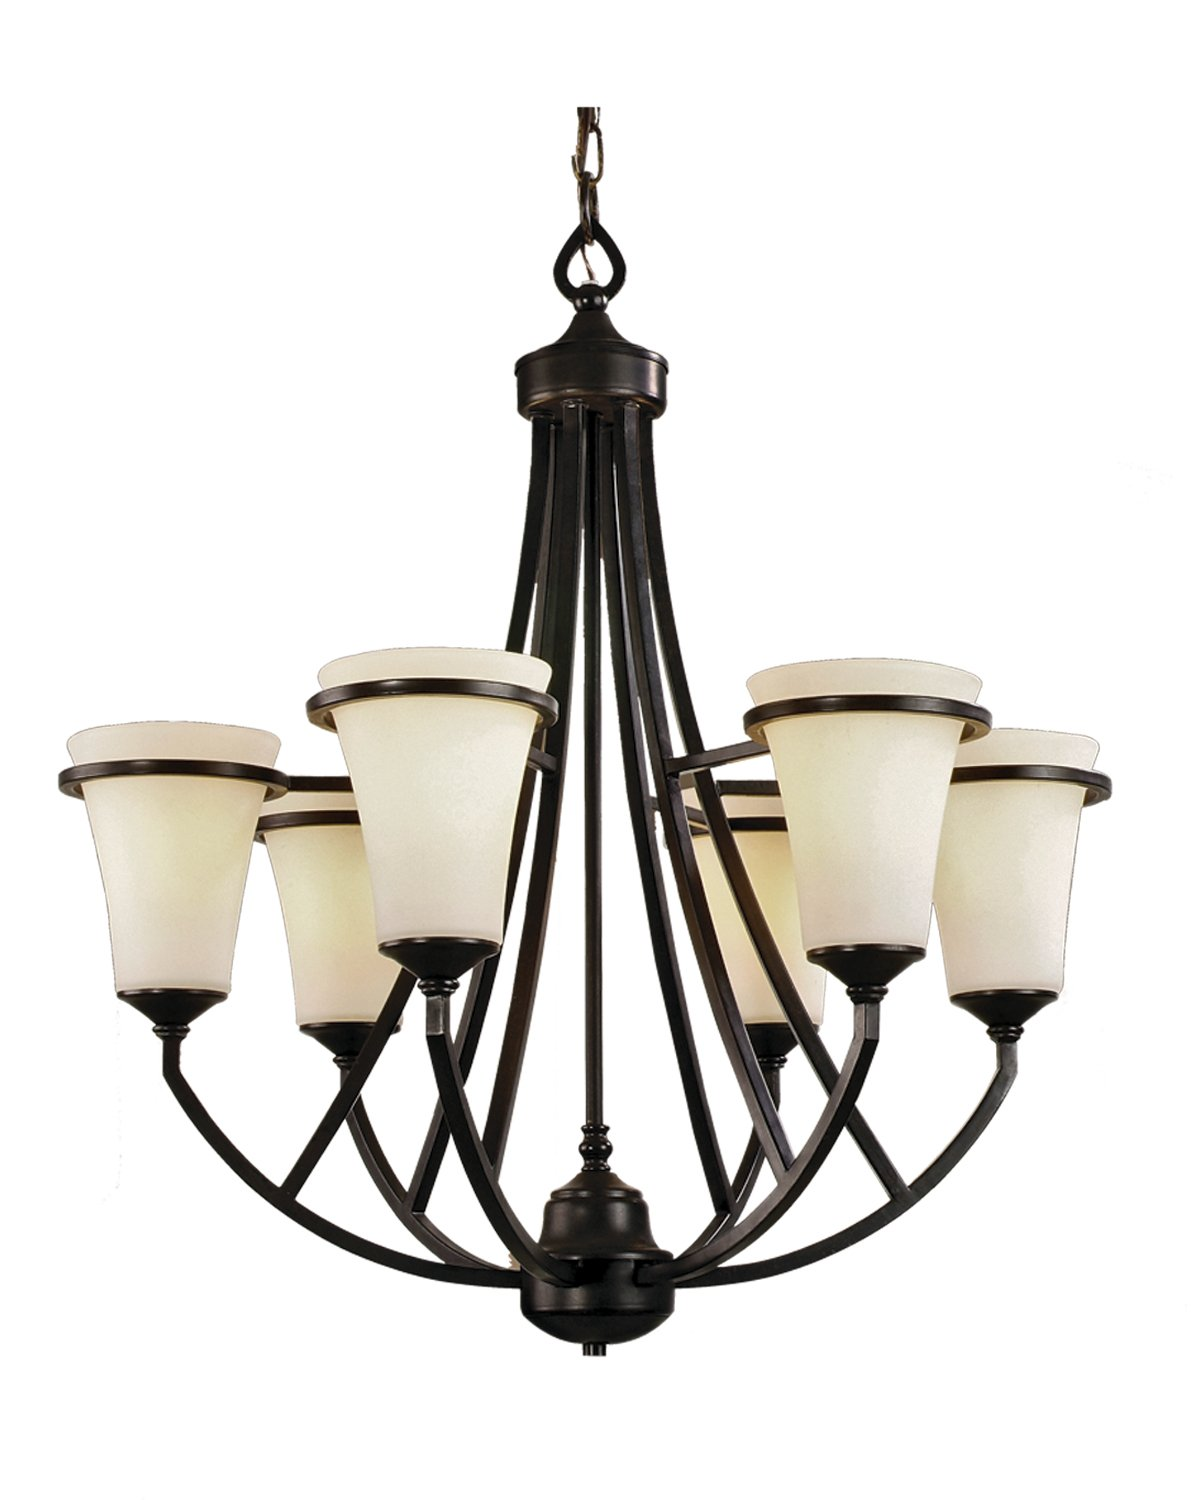 lighting 9706-abz-111 chandeliers with satin opal glass shades